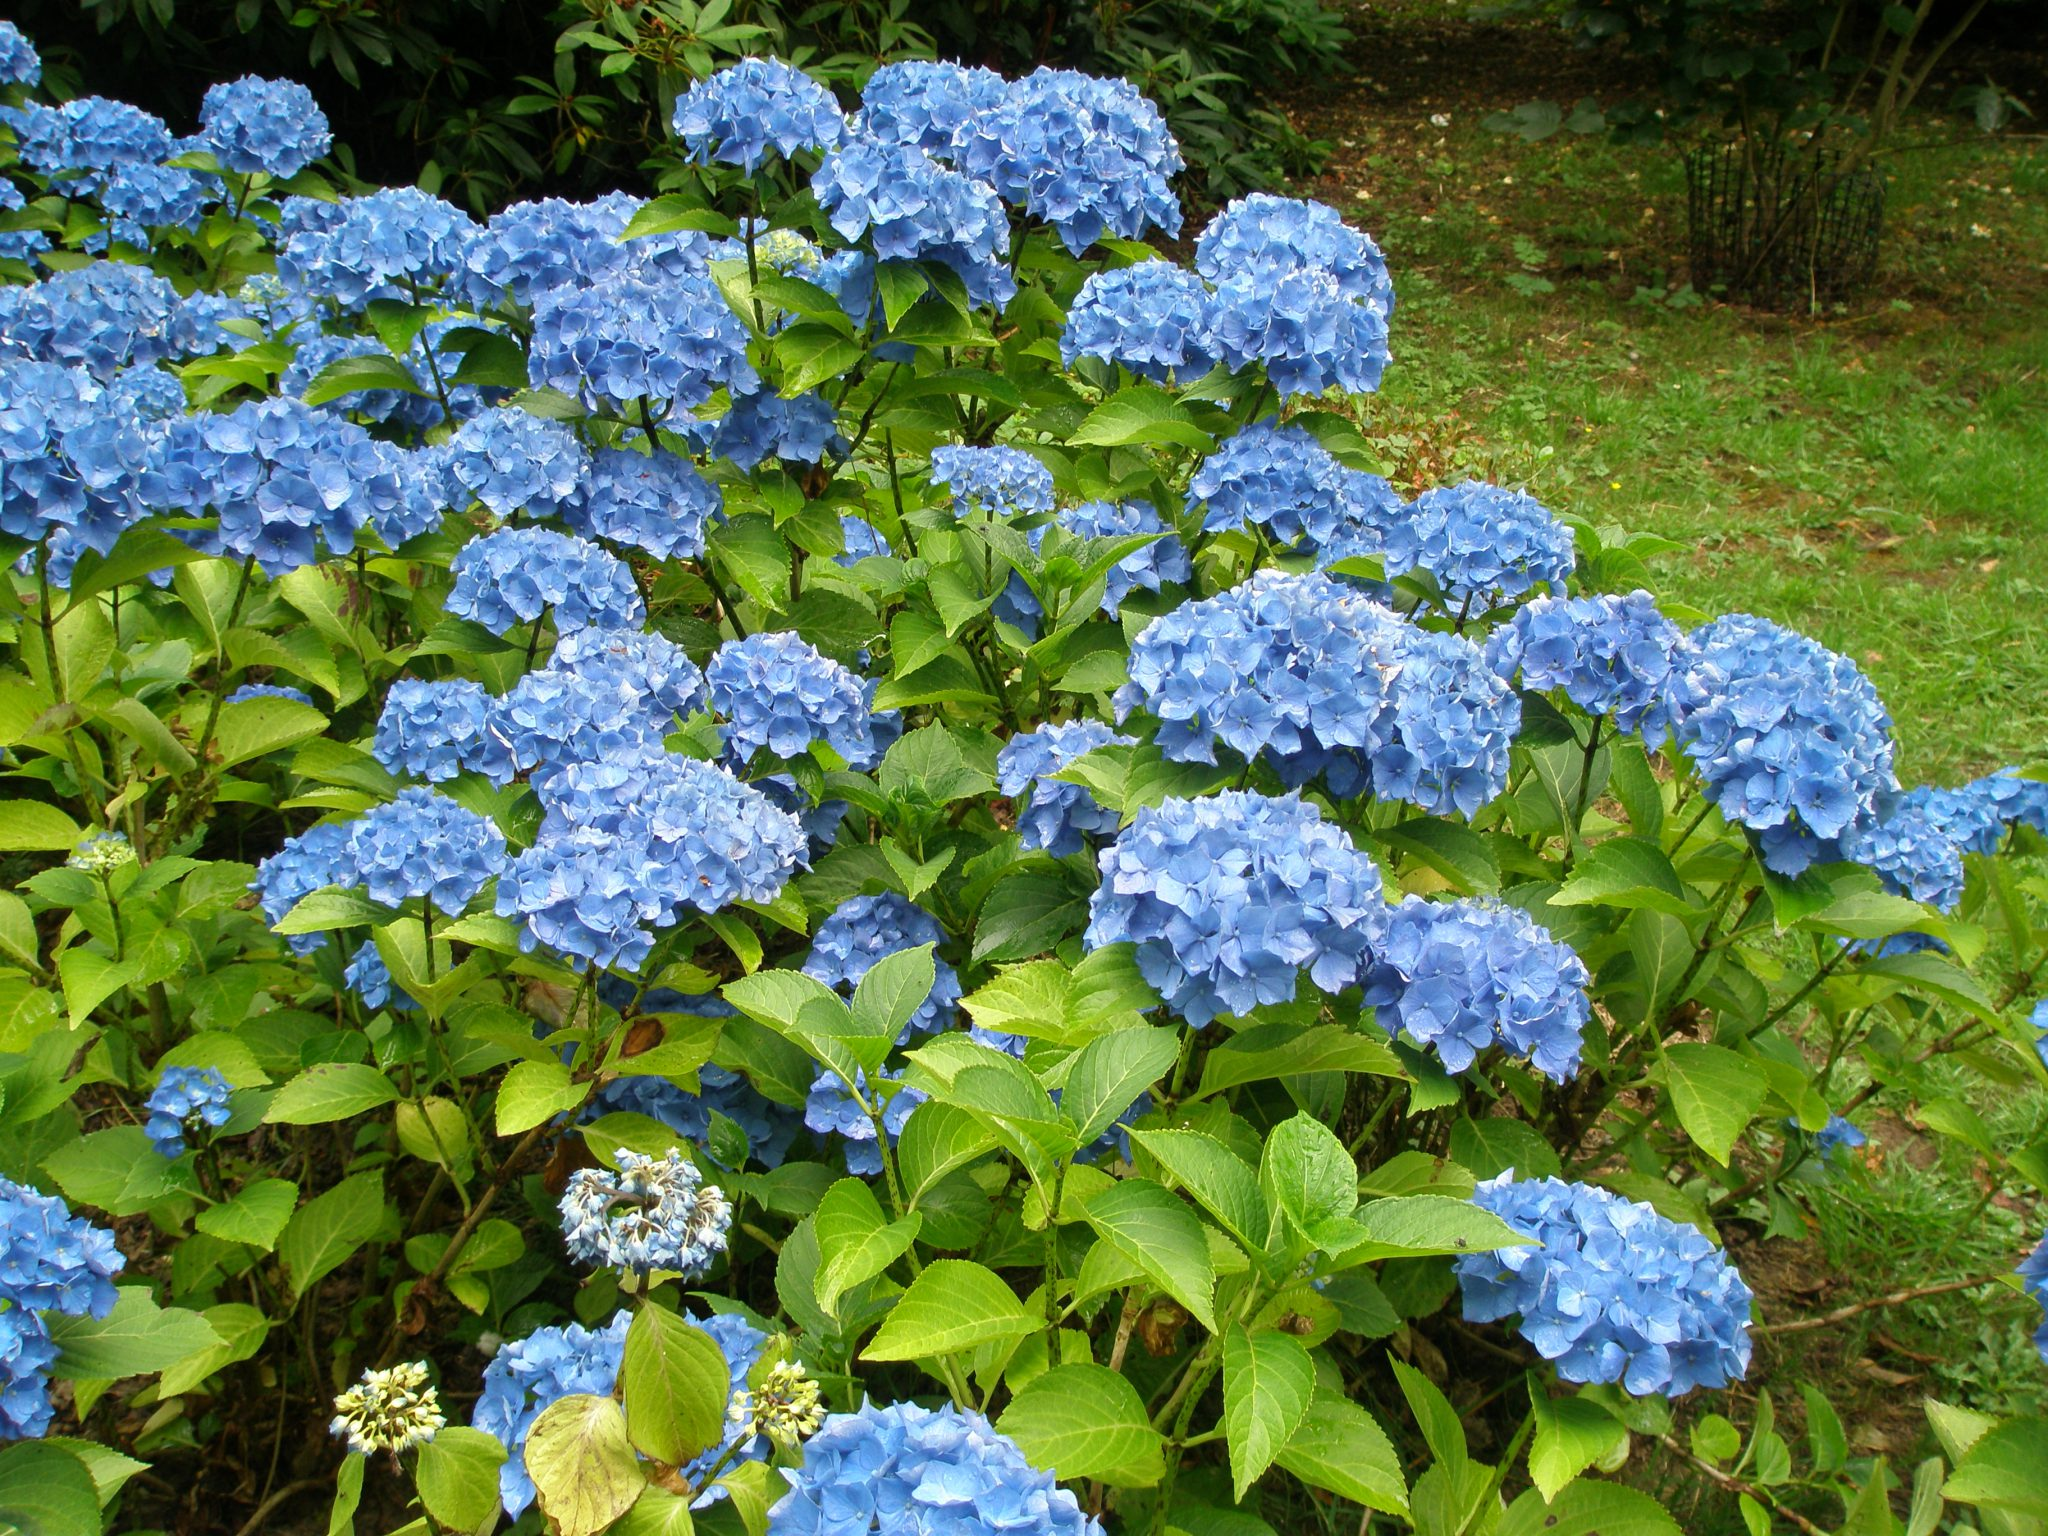 Electric-Blue Hydrangeas abound in the Woodland Garden. WOW!